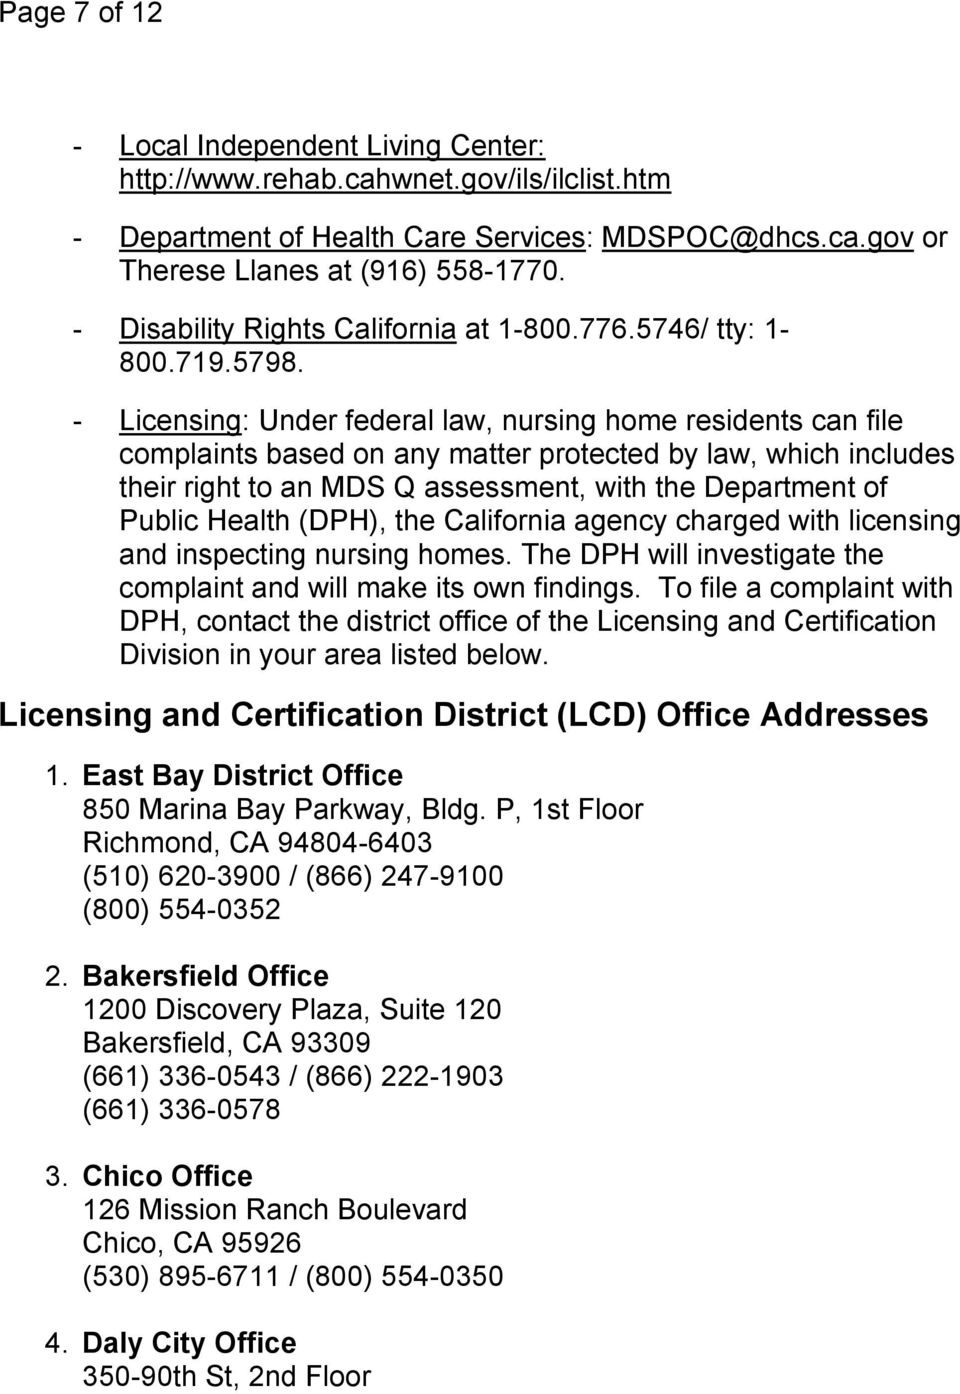 - Licensing: Under federal law, nursing home residents can file complaints based on any matter protected by law, which includes their right to an MDS Q assessment, with the Department of Public